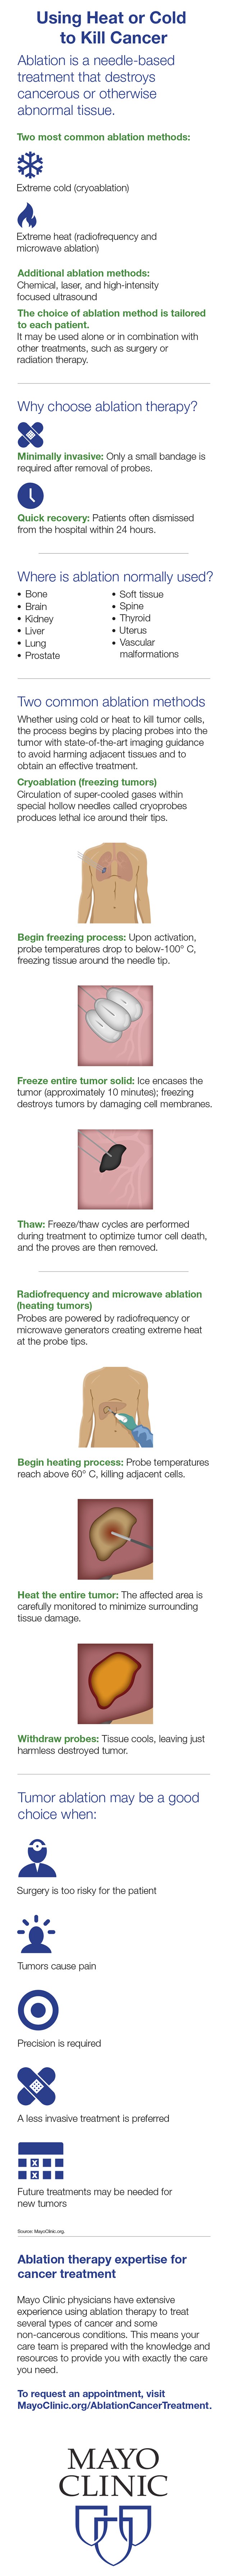 Infographic for ablation for cancer treatment